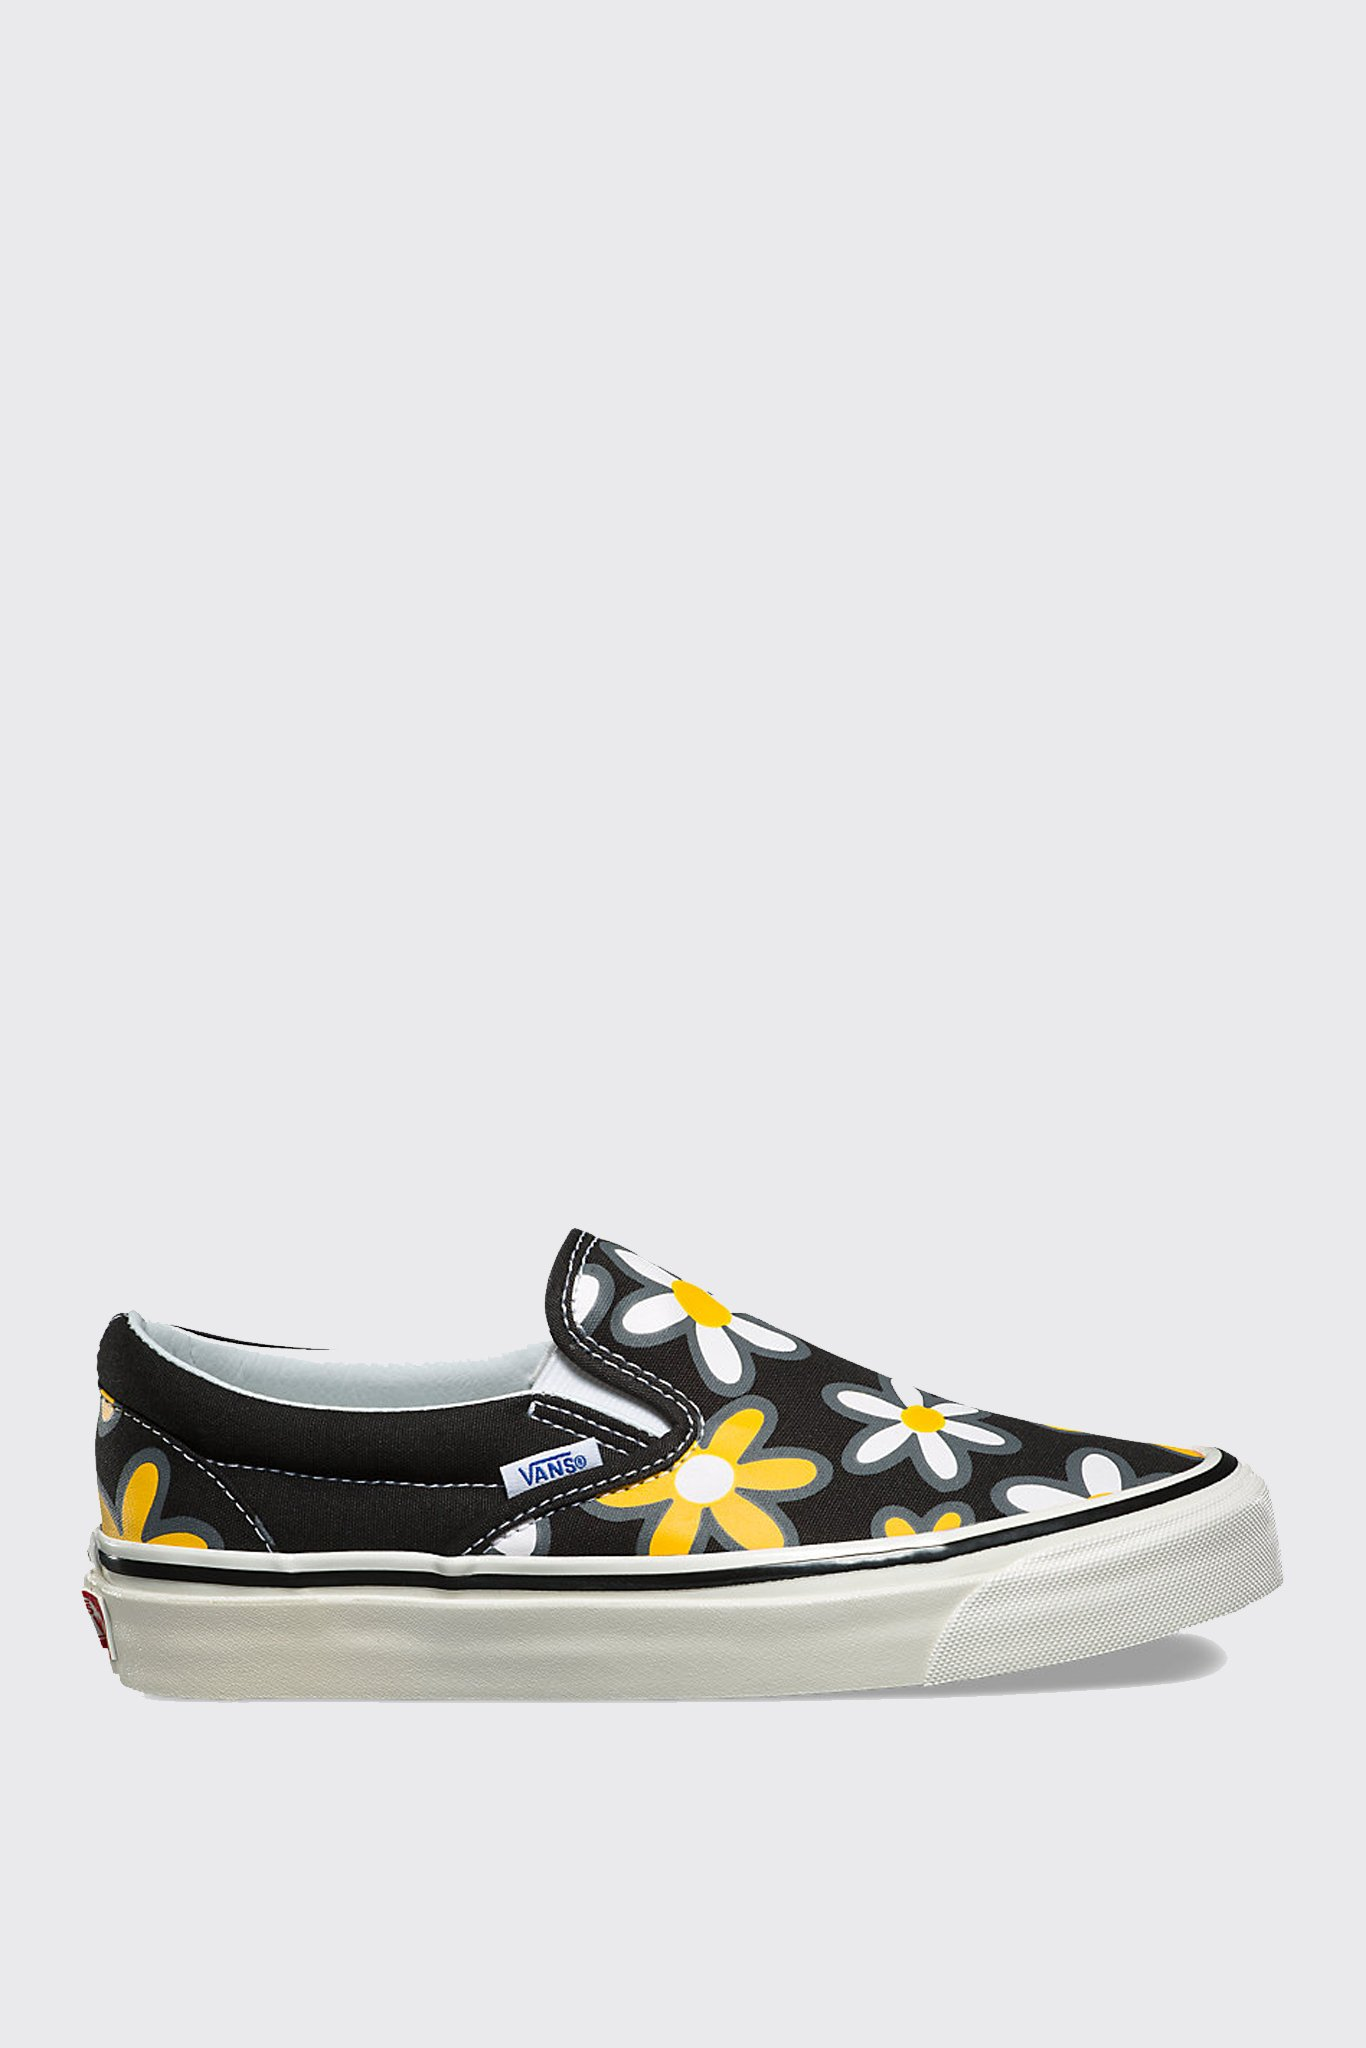 c6fa88e864 Unisex Vans Anaheim Factory Slip On - 98 DX | Garmentory